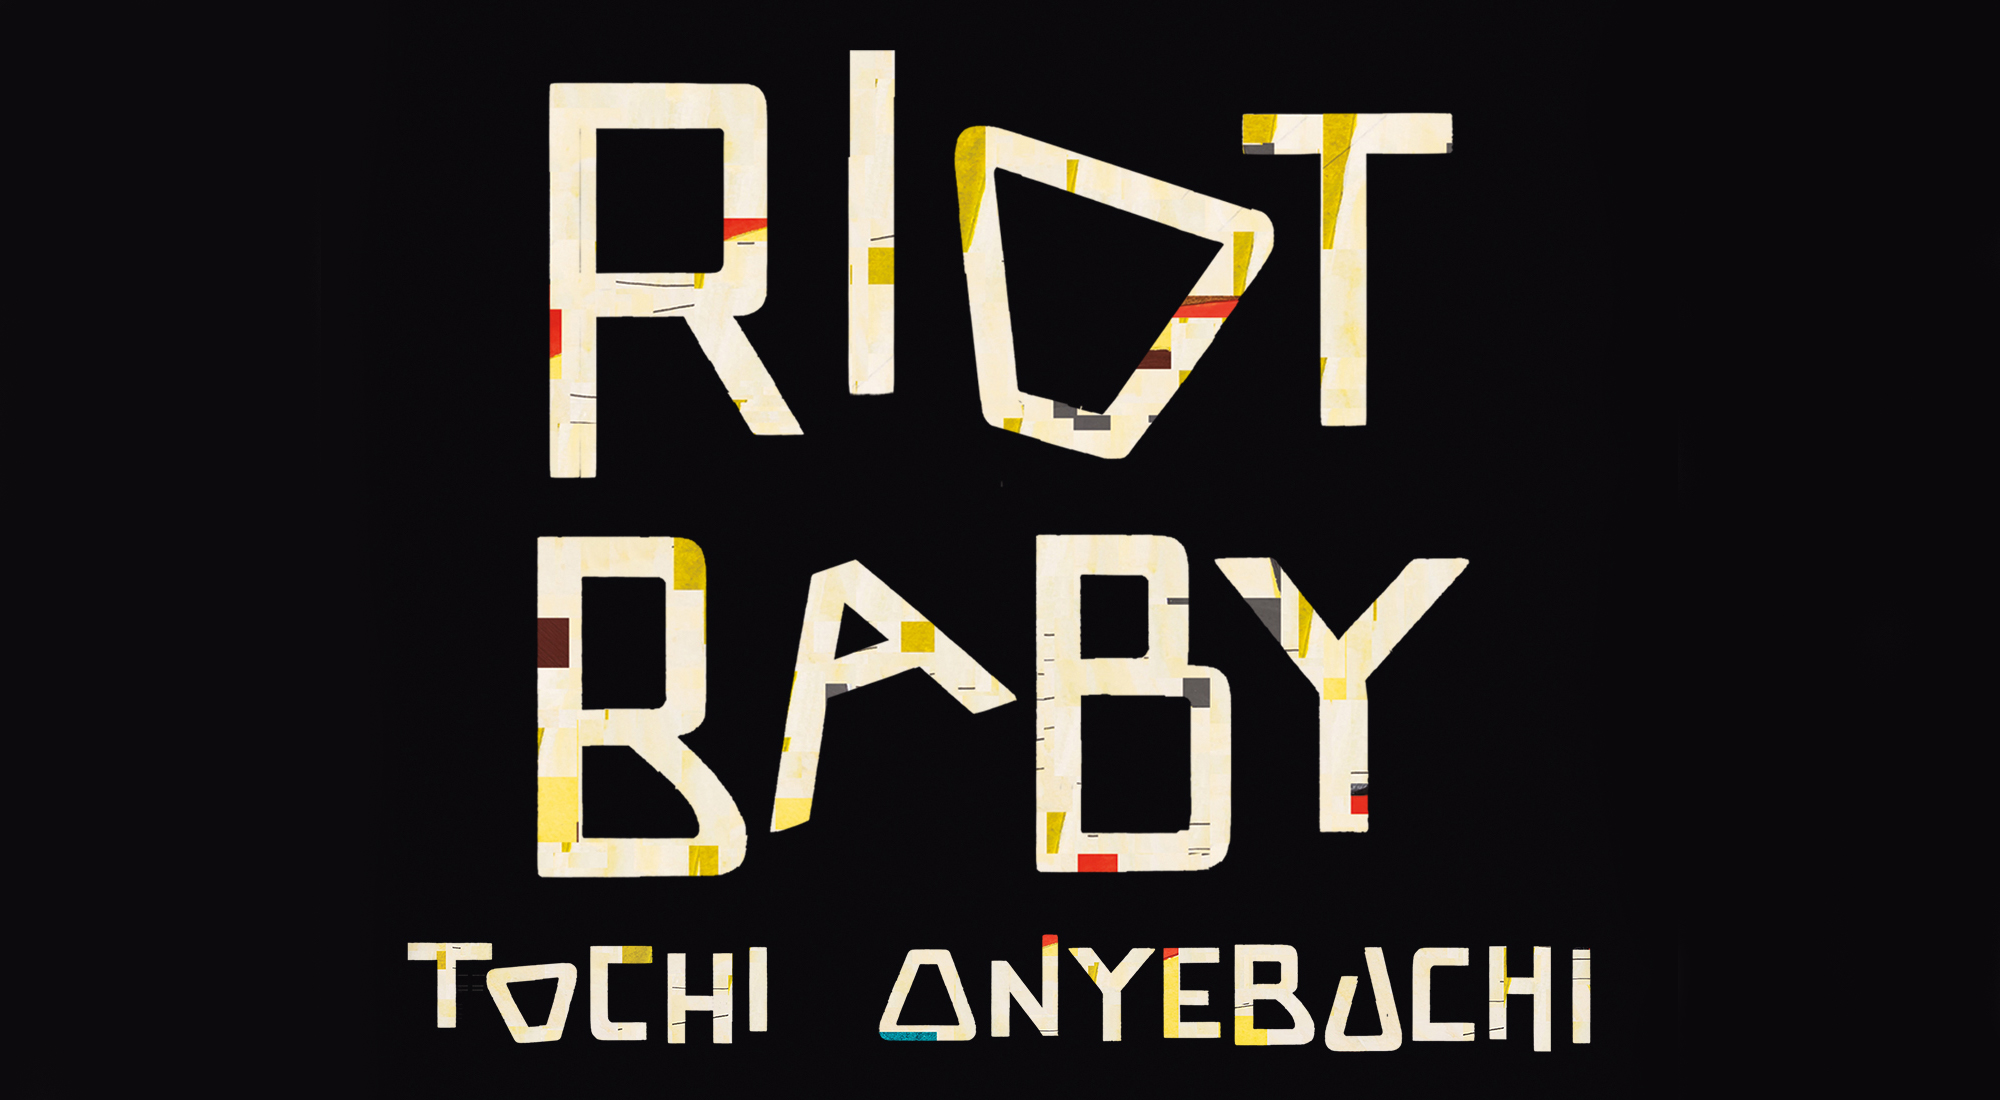 Comin' Straight From the Underground: Riot Baby by Tochi Onyebuchi